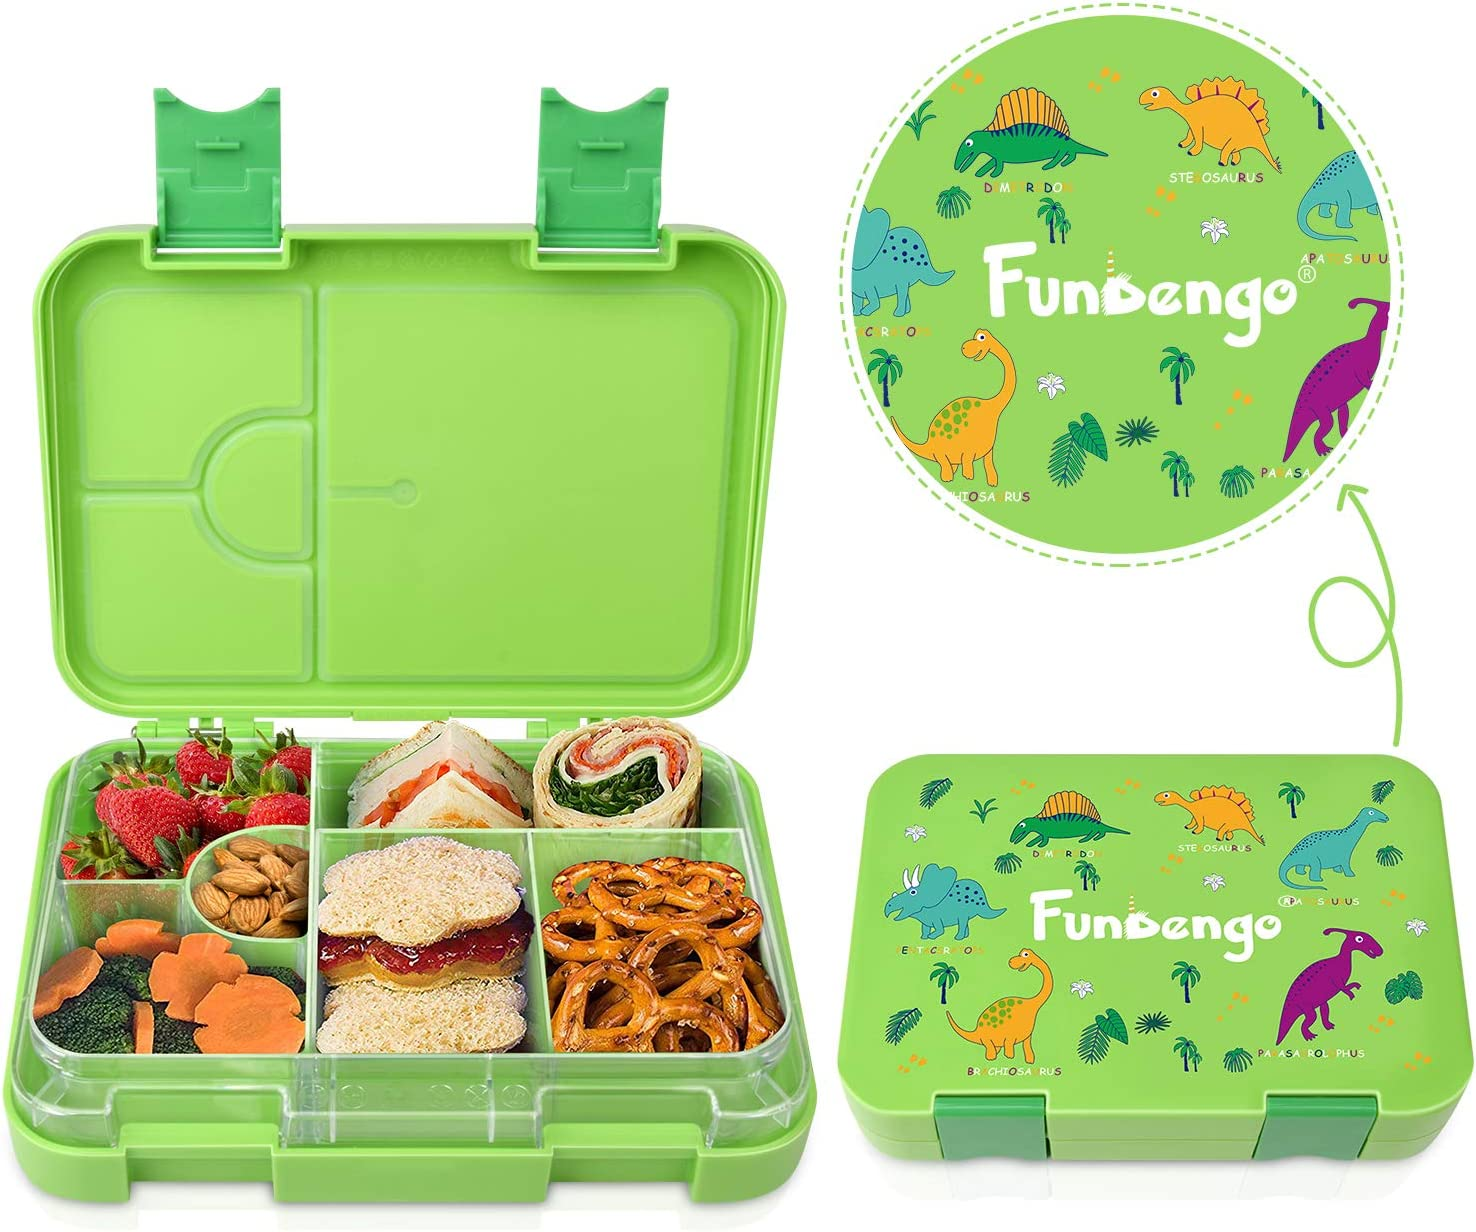 Kids Bento Box Lunch Box-Durable, Leak-Proof, 4 or 6 Perfectly Proportioned Kid-Sized Compartments BPA-Free and Food-Safe Materials Bento Box Containers (Green Dinosaur)